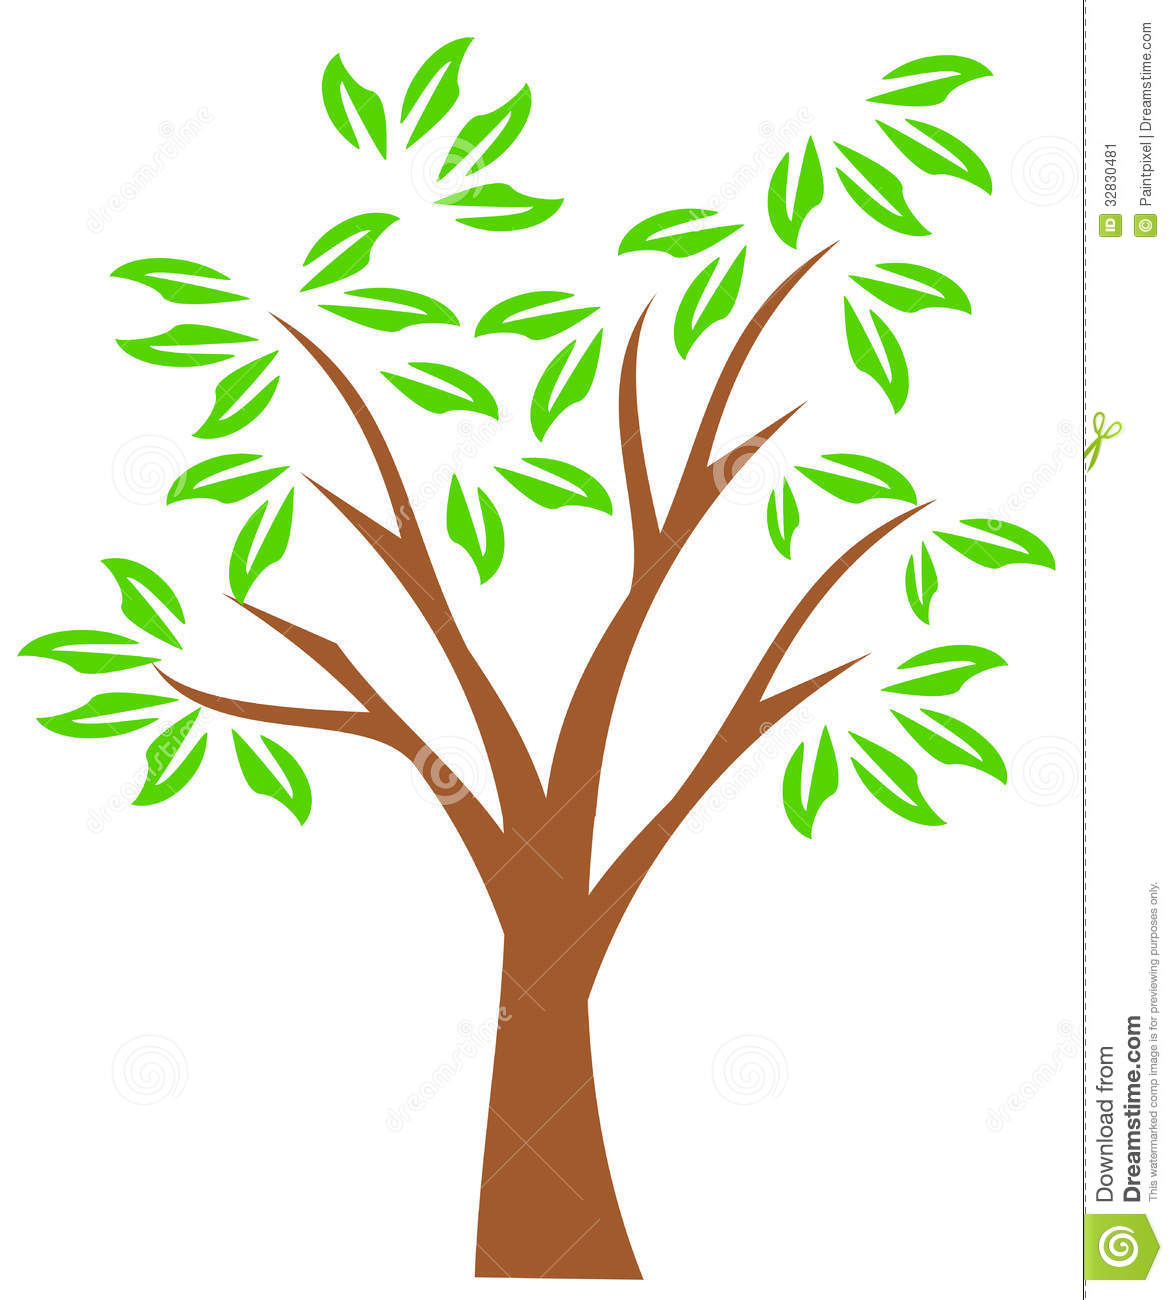 Branch clipart tree log Free Clip Tree Images Panda